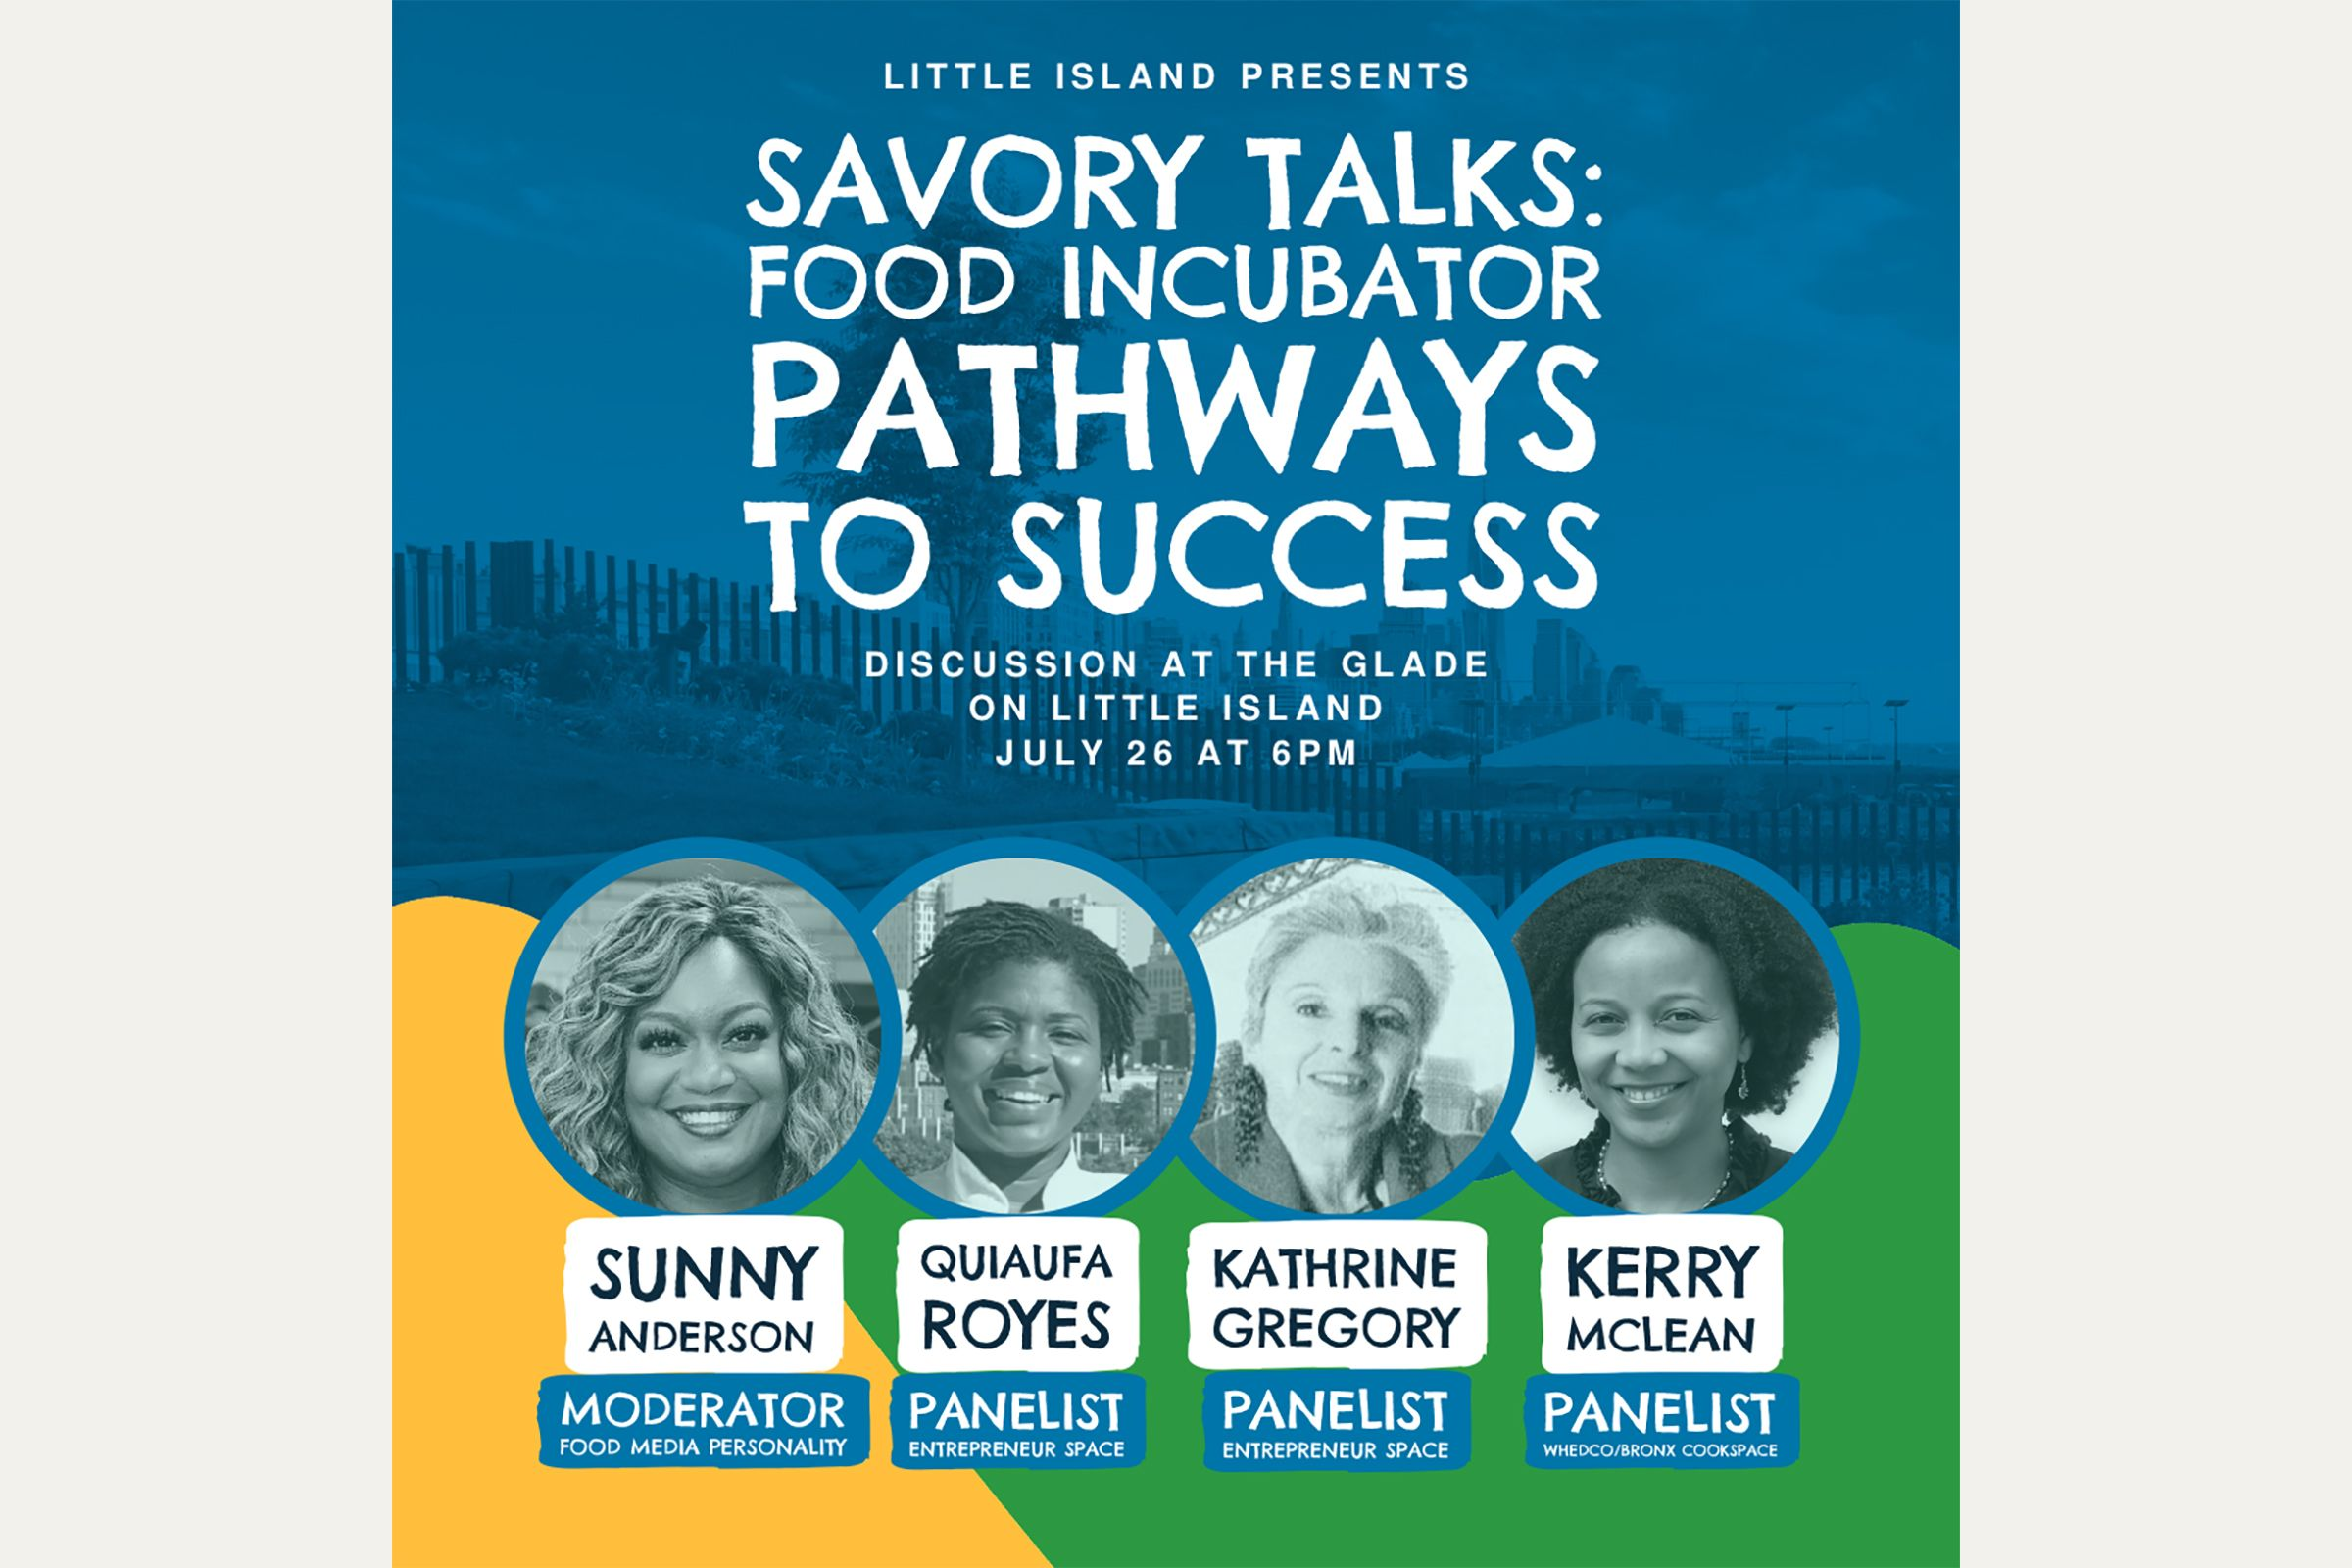 Little Island Presents: Savory Talks: Food Incubator Pathways to Success. Discussion at The Glade on Little Island, July 26 at 6PM